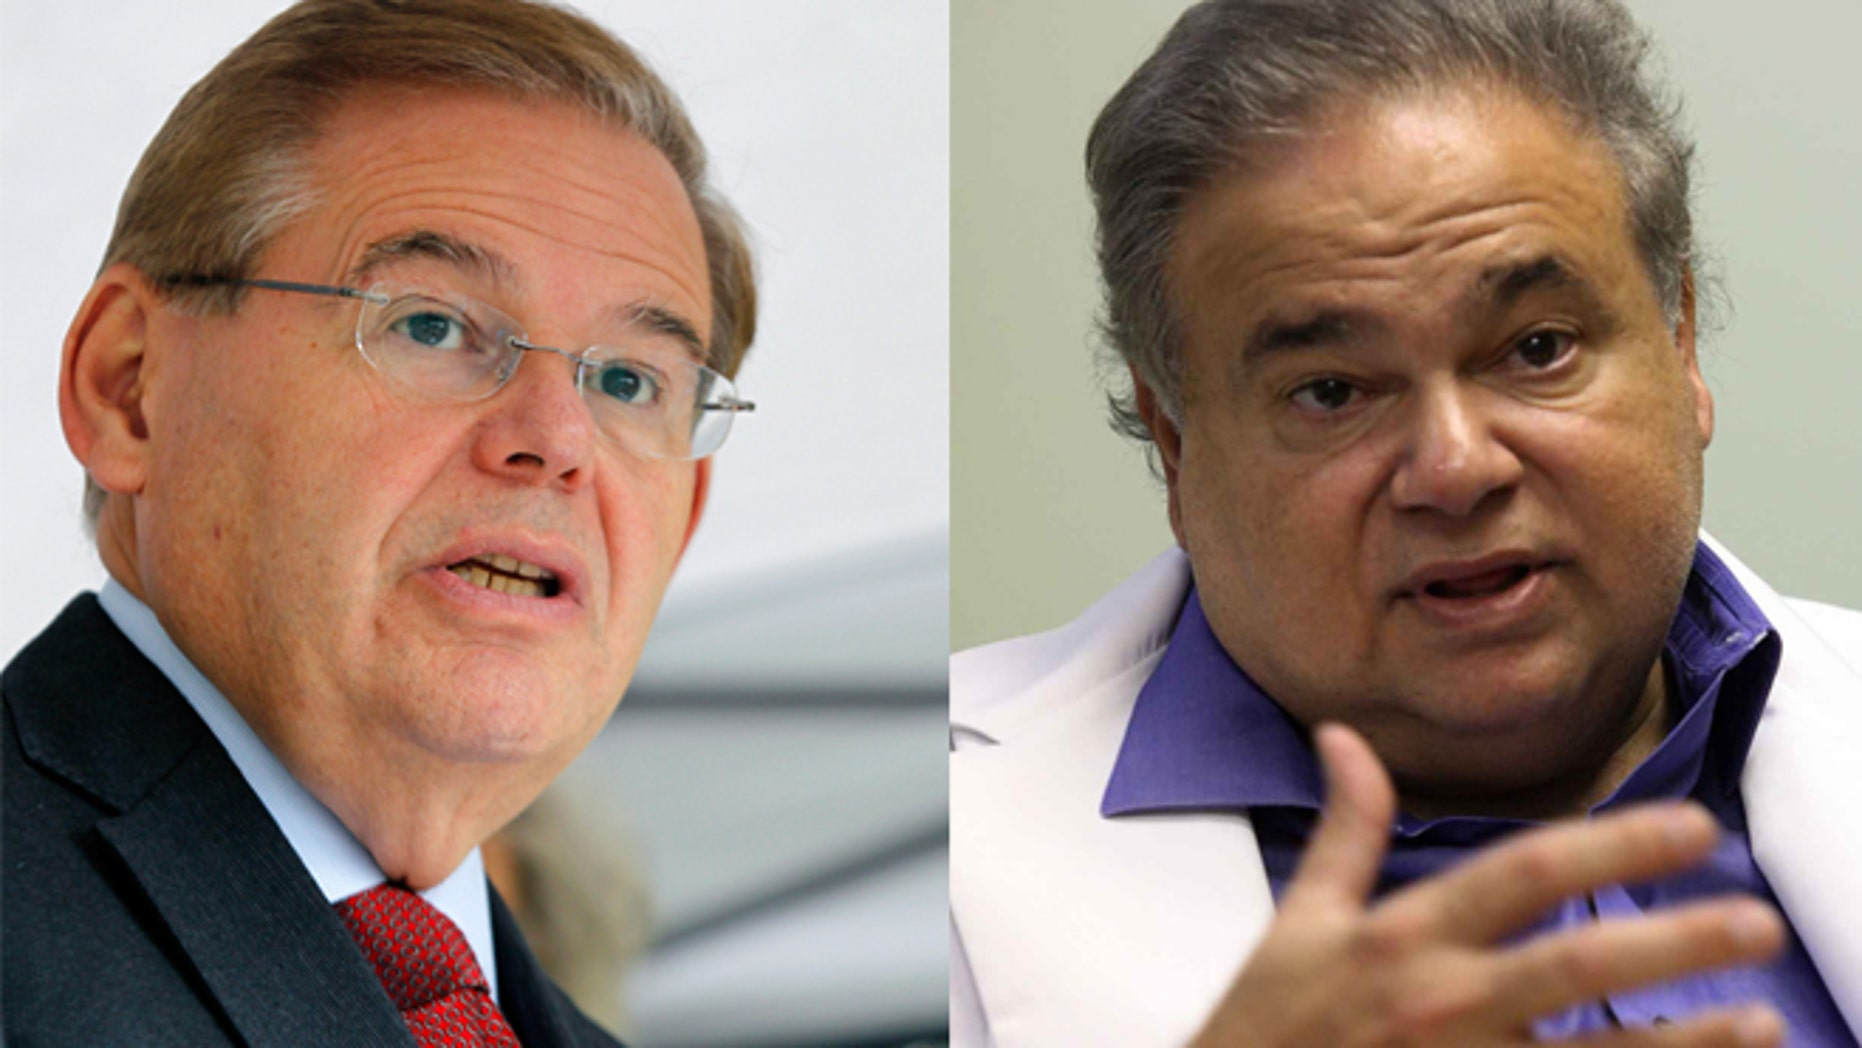 Senator Robert Menendez (D-NJ) on the left and Dr. Salomon Melgen, a Florida eye doctor of Dominican descent who is a prominent Democratic campaign contributor.